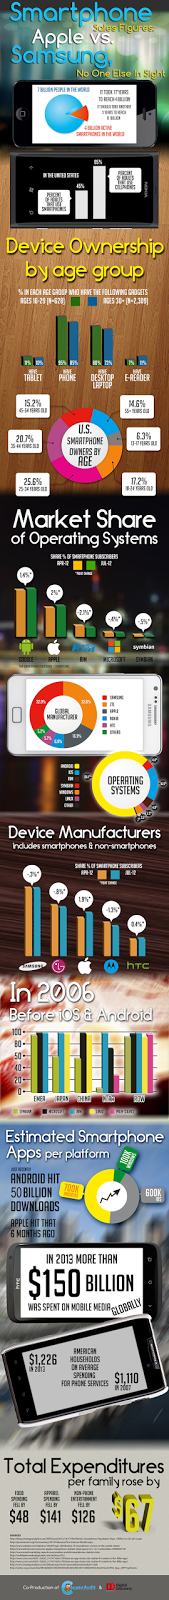 http://digitaldiscovery.eu/smartphone-sales-figures-apple-vs-samsung-one-else-sight/